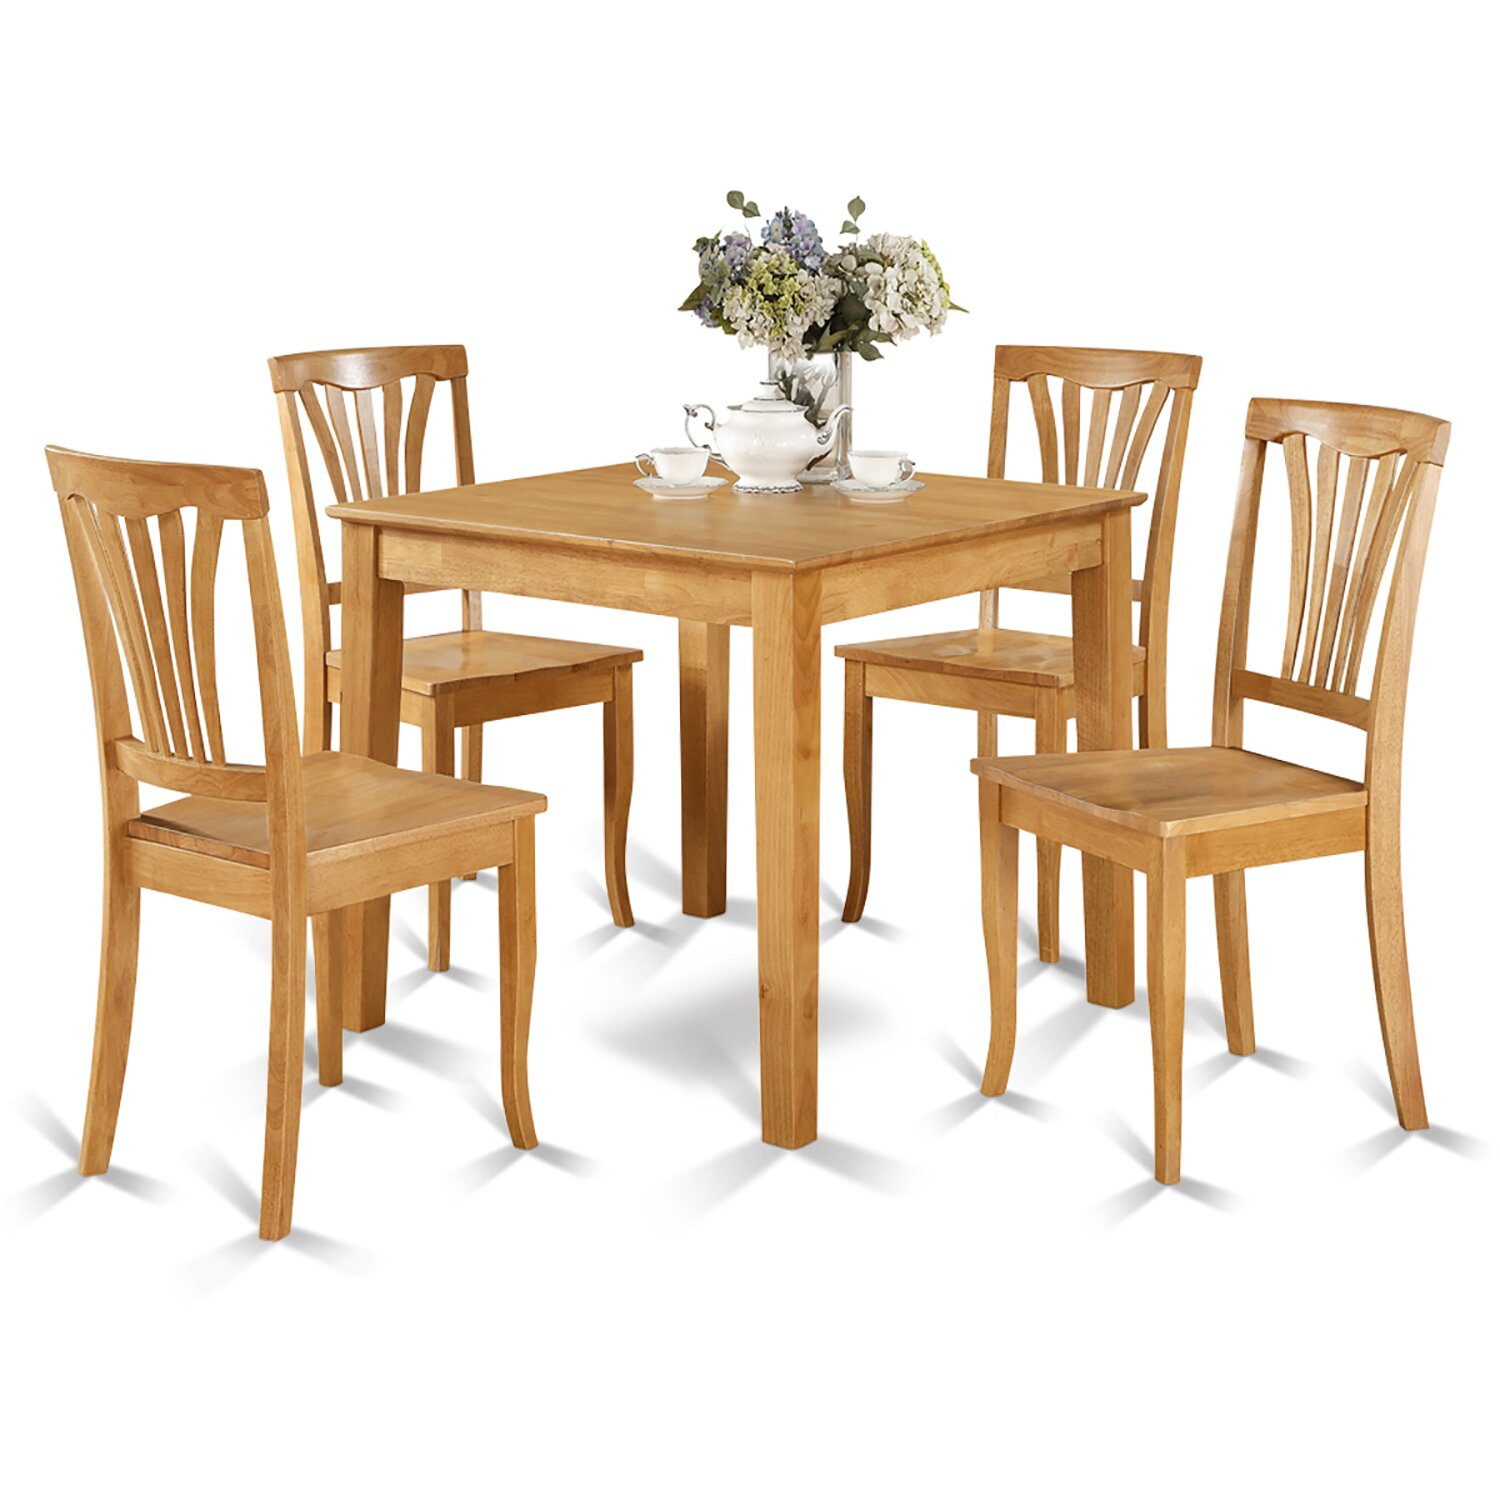 Wooden importers oxford 5 piece dining set reviews wayfair for Small kitchen table with 4 chairs